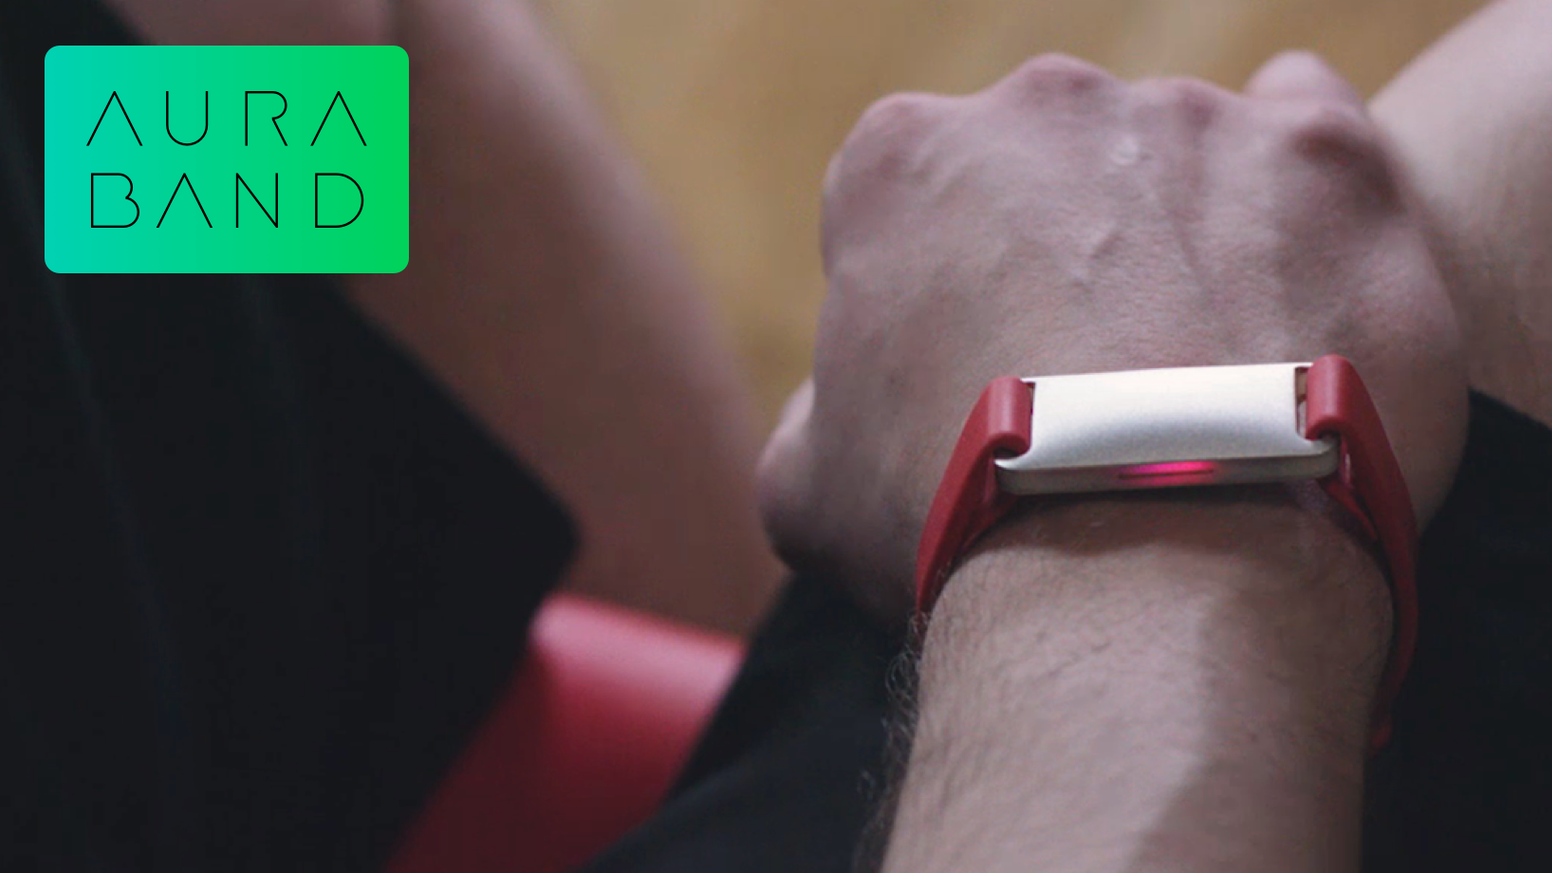 The first fitness tracker with bioimpedance analysis: measure fat/muscle percentage, hydration levels, heart rate and activity